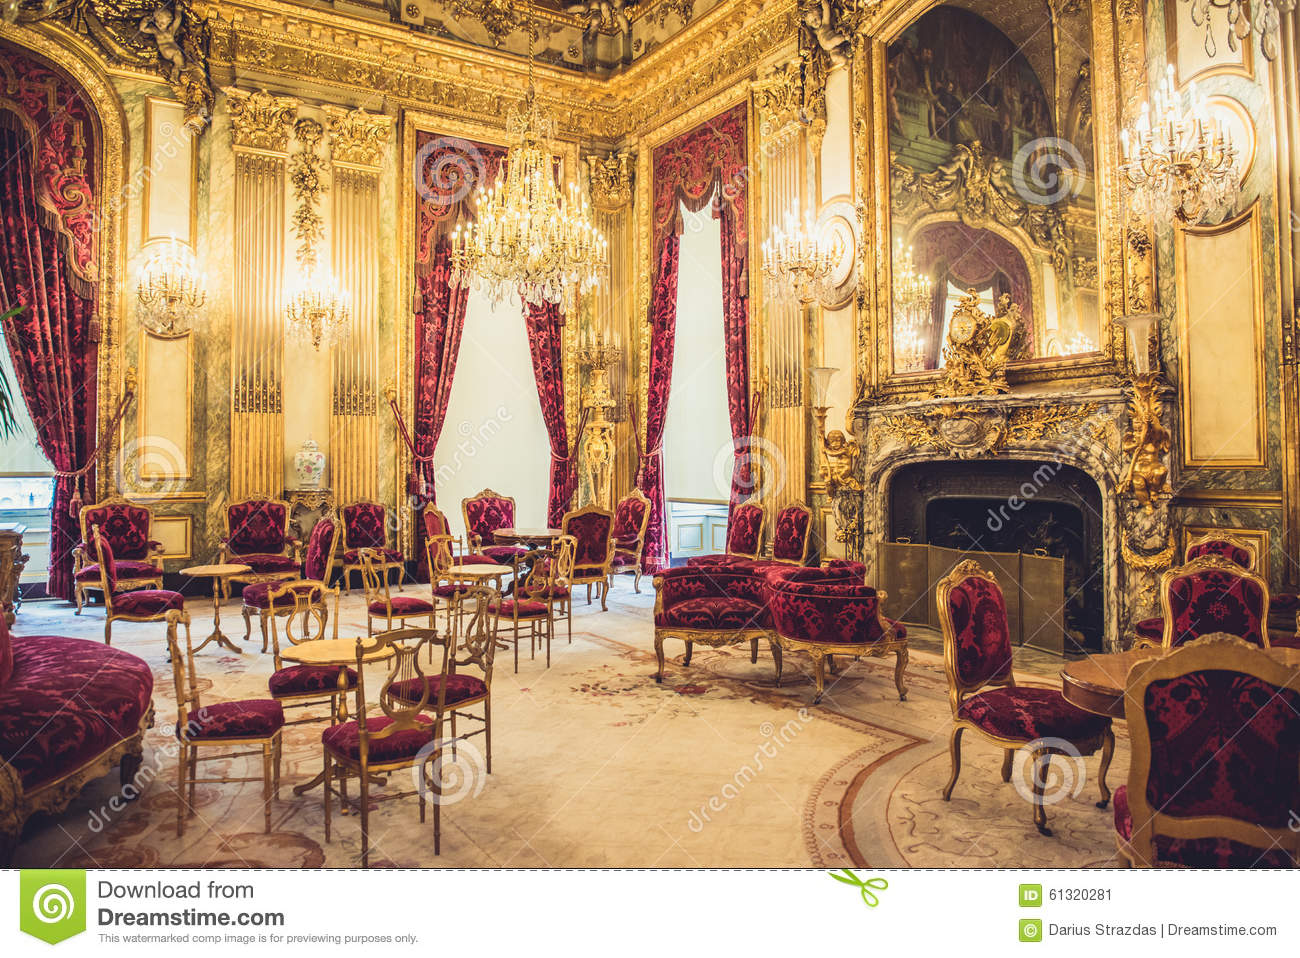 Louvre museum napoleon apartments stock image image of for Interiors furniture galleries